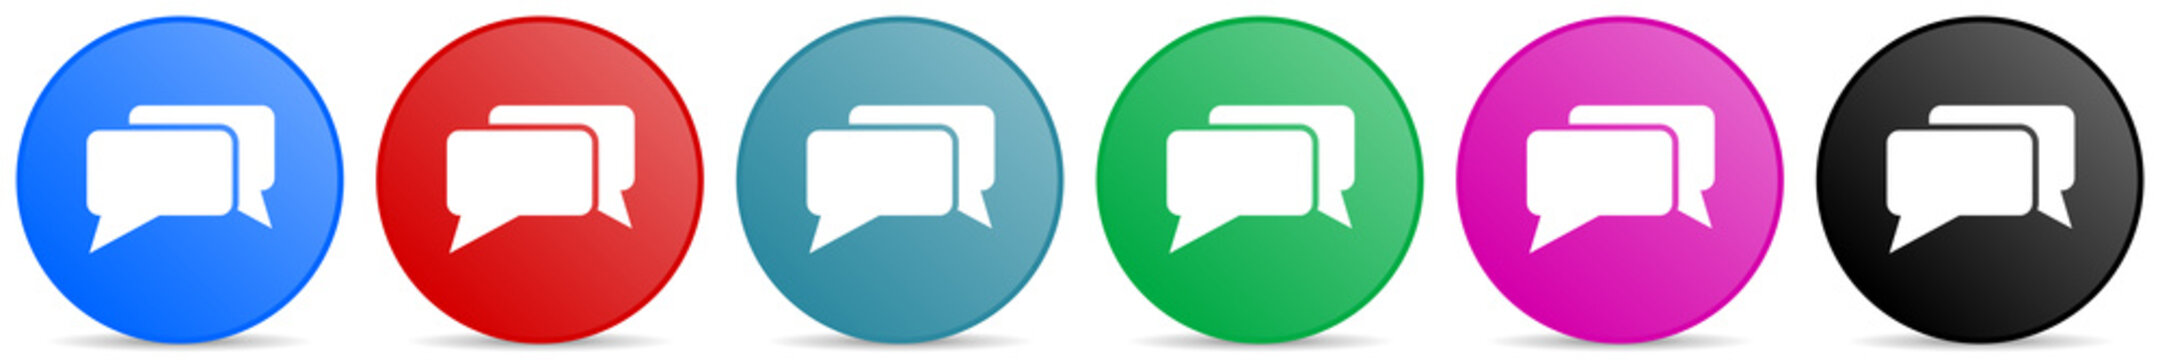 Message, bubble, dialog vector icons, set of circle gradient buttons in 6 colors options for webdesign and mobile applications